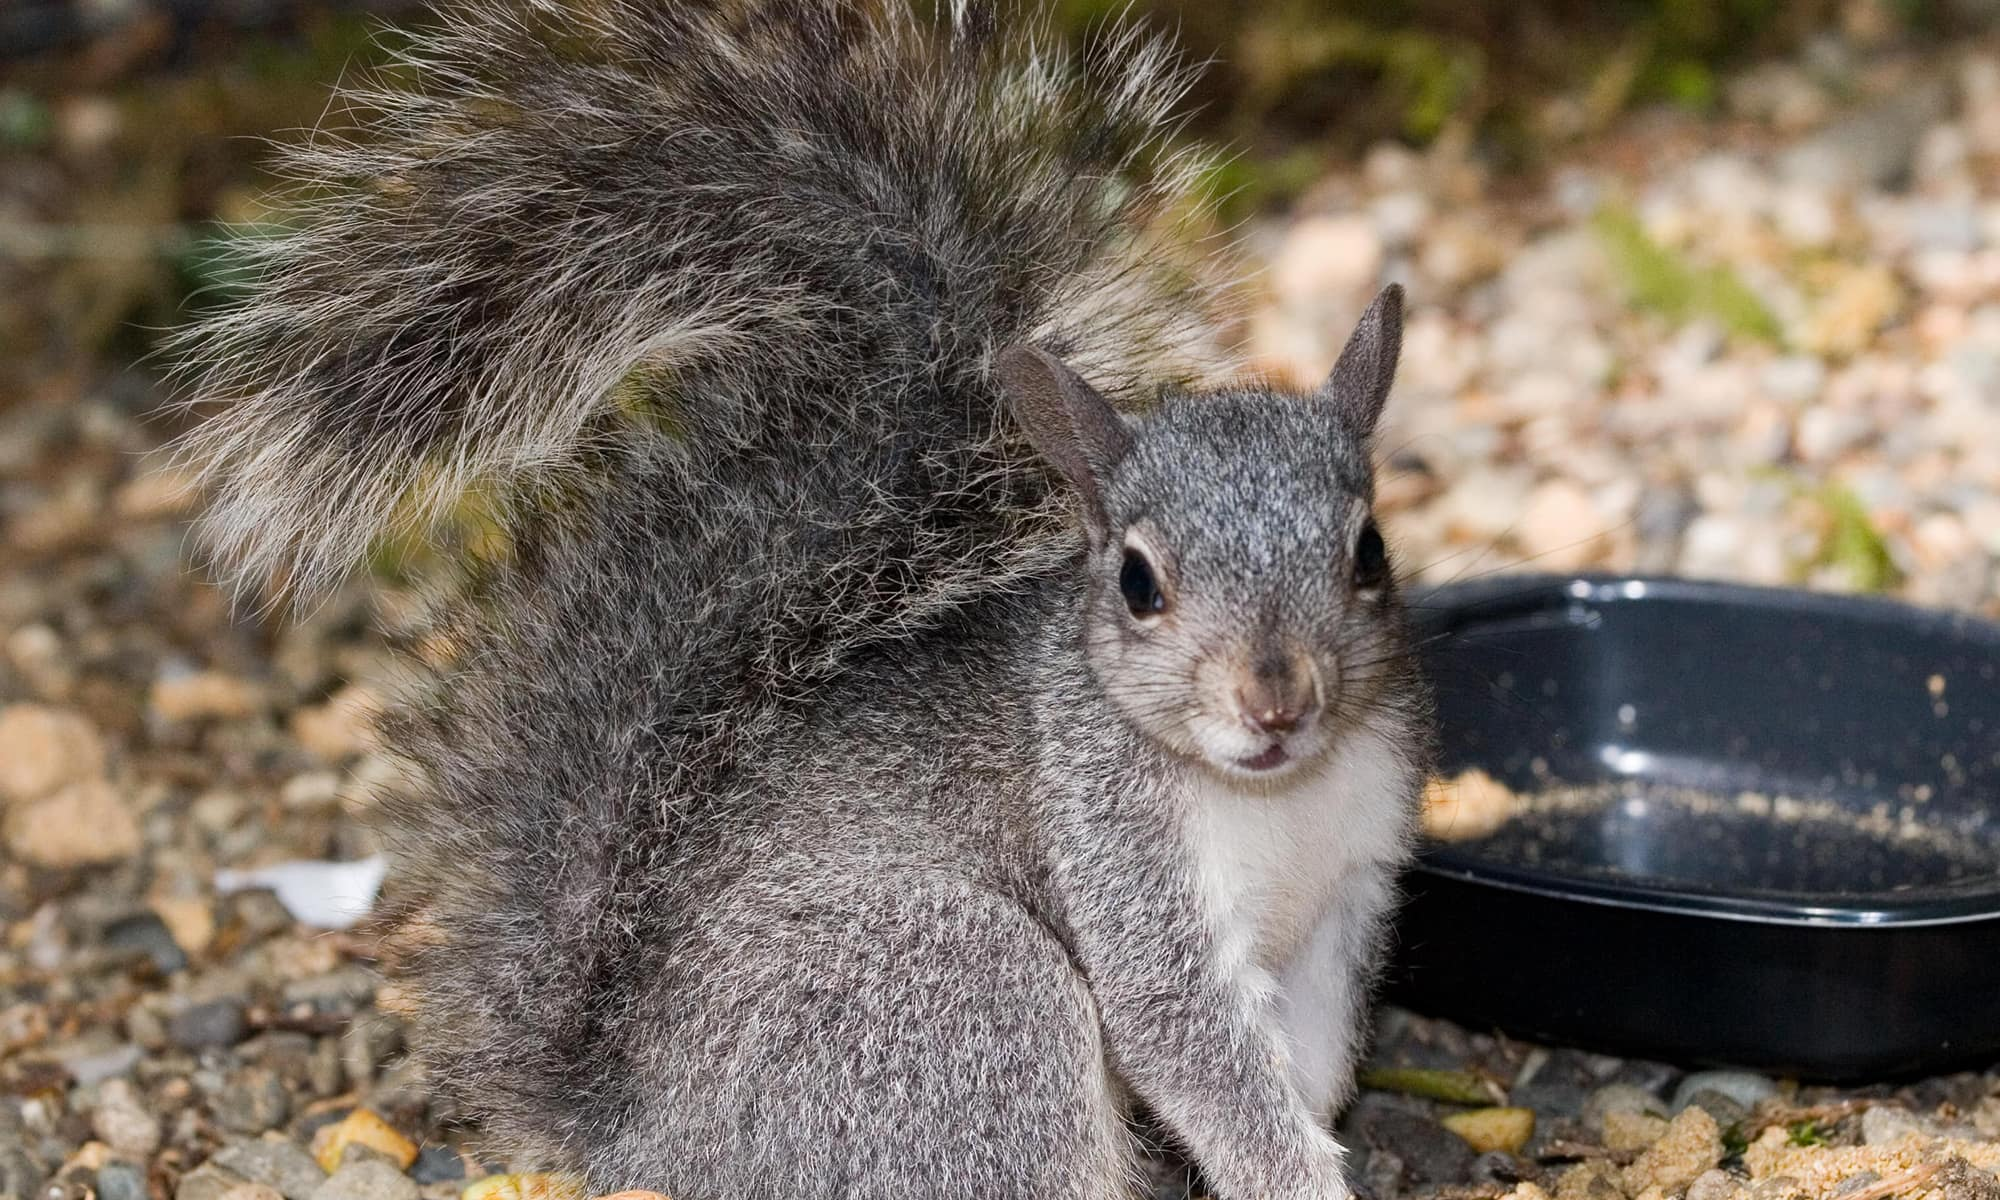 Squirrels and Chipmunks | PAWS on deer eat, penguins eat, cows eat, tigers eat, snakes eat, spiders eat, seals eat, squirrels eat, mice eat, rodents eat,